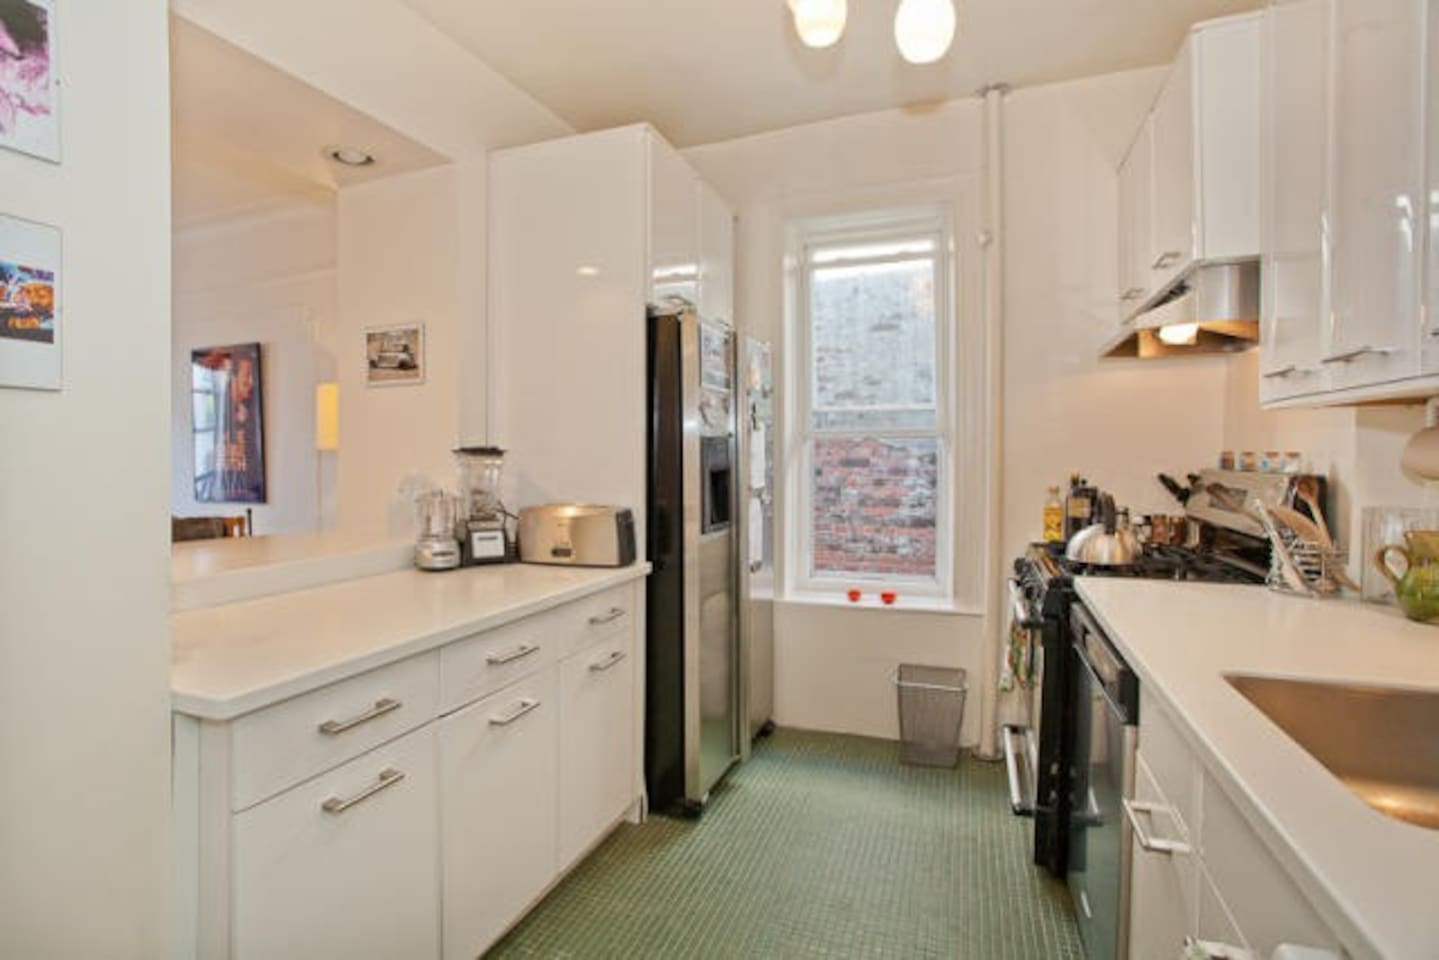 Gourmet kitchen owned by two former chefs and fully stocked with all the cooking equipment a chef needs!